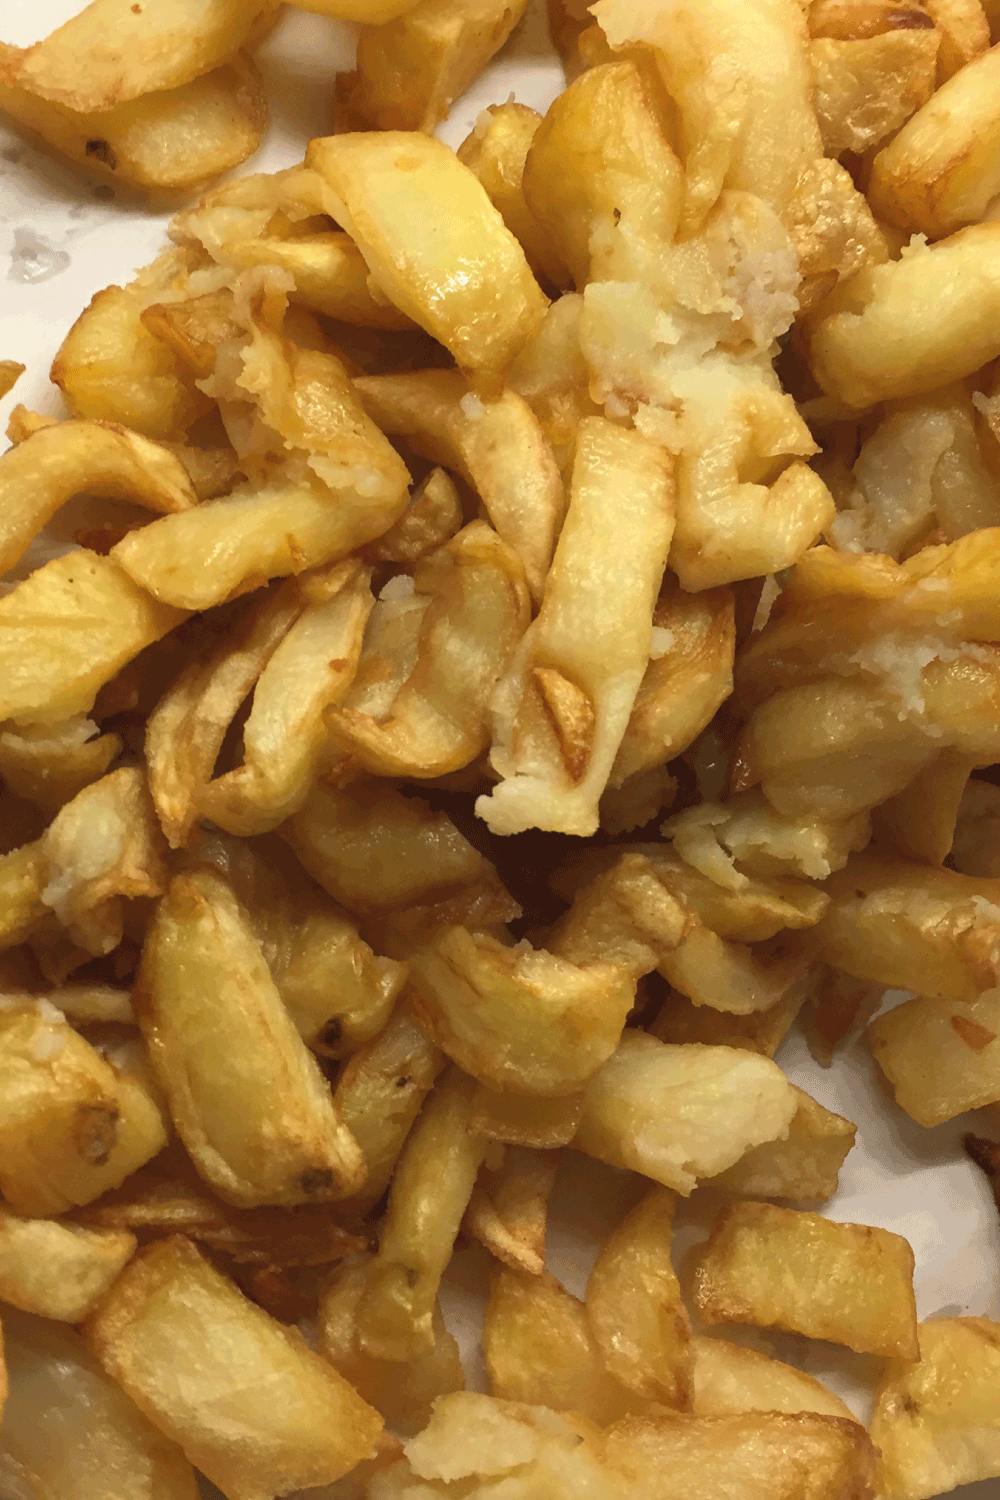 Image of soggy, floppy greasy chip shop chips. French fries takeaway food